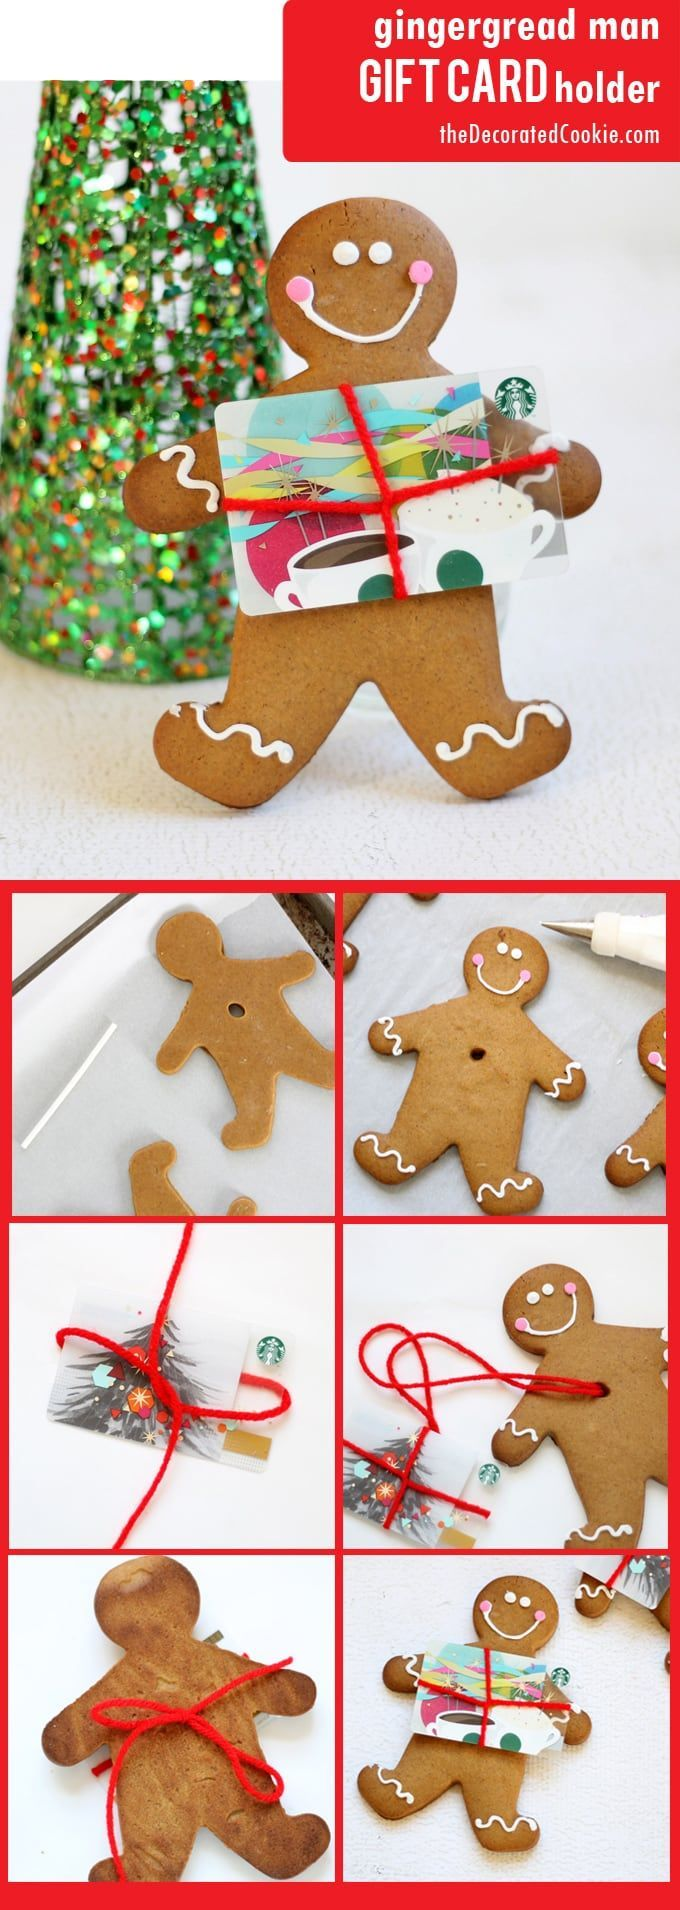 Gingerbread man cookie gift card holder! Makes gift cards less boring. Personalized Christmas gift idea.